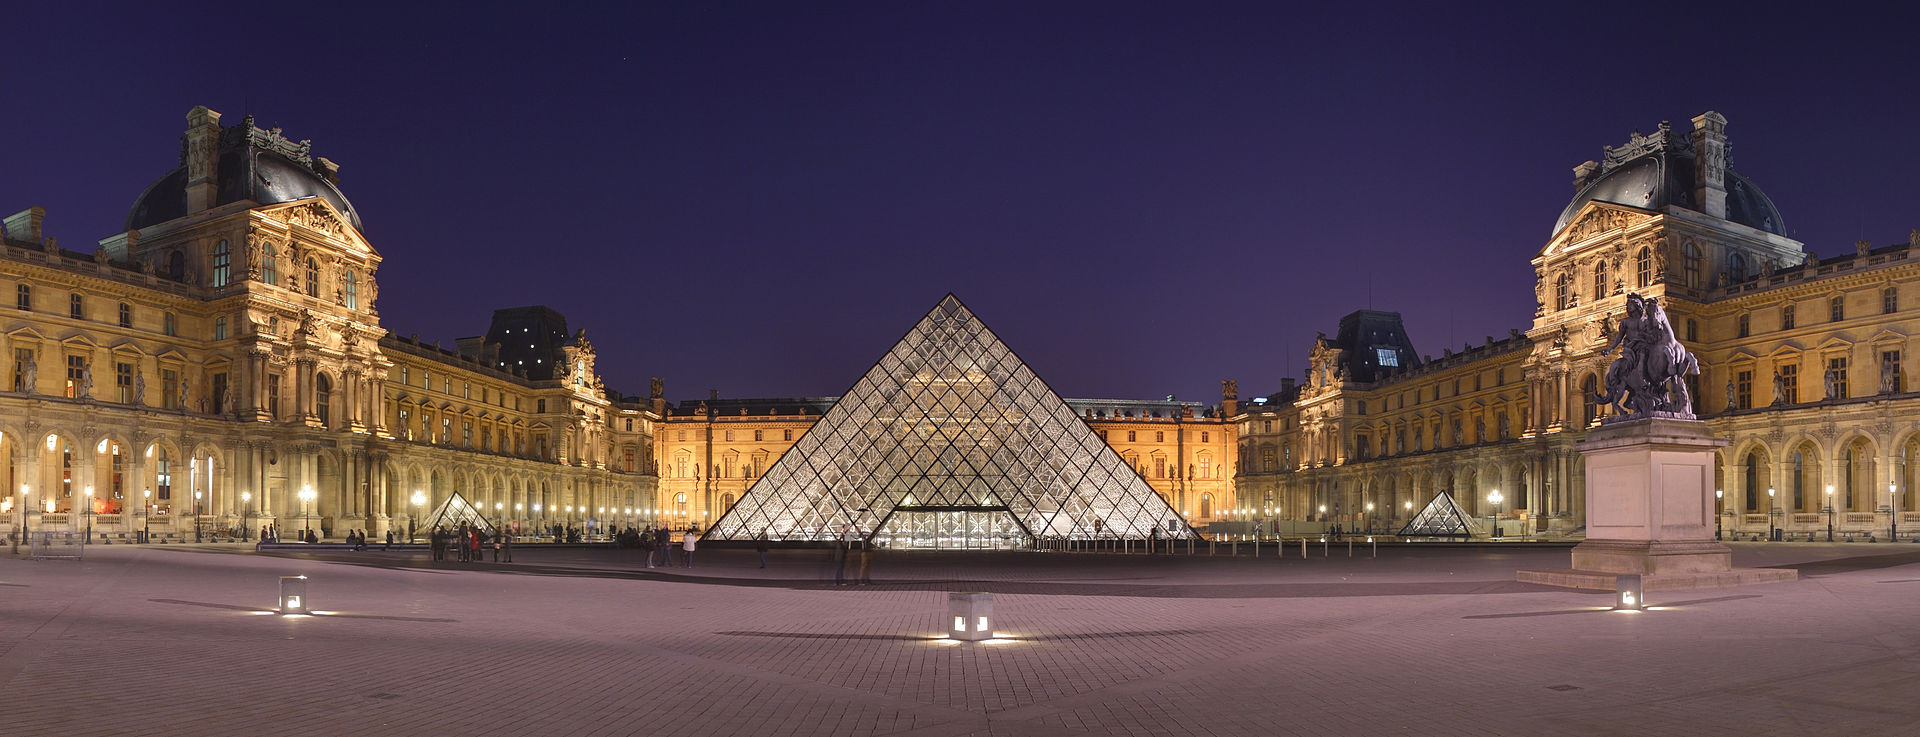 Israeli Students Denied Tours at Louvre, Sainte-Chapelle